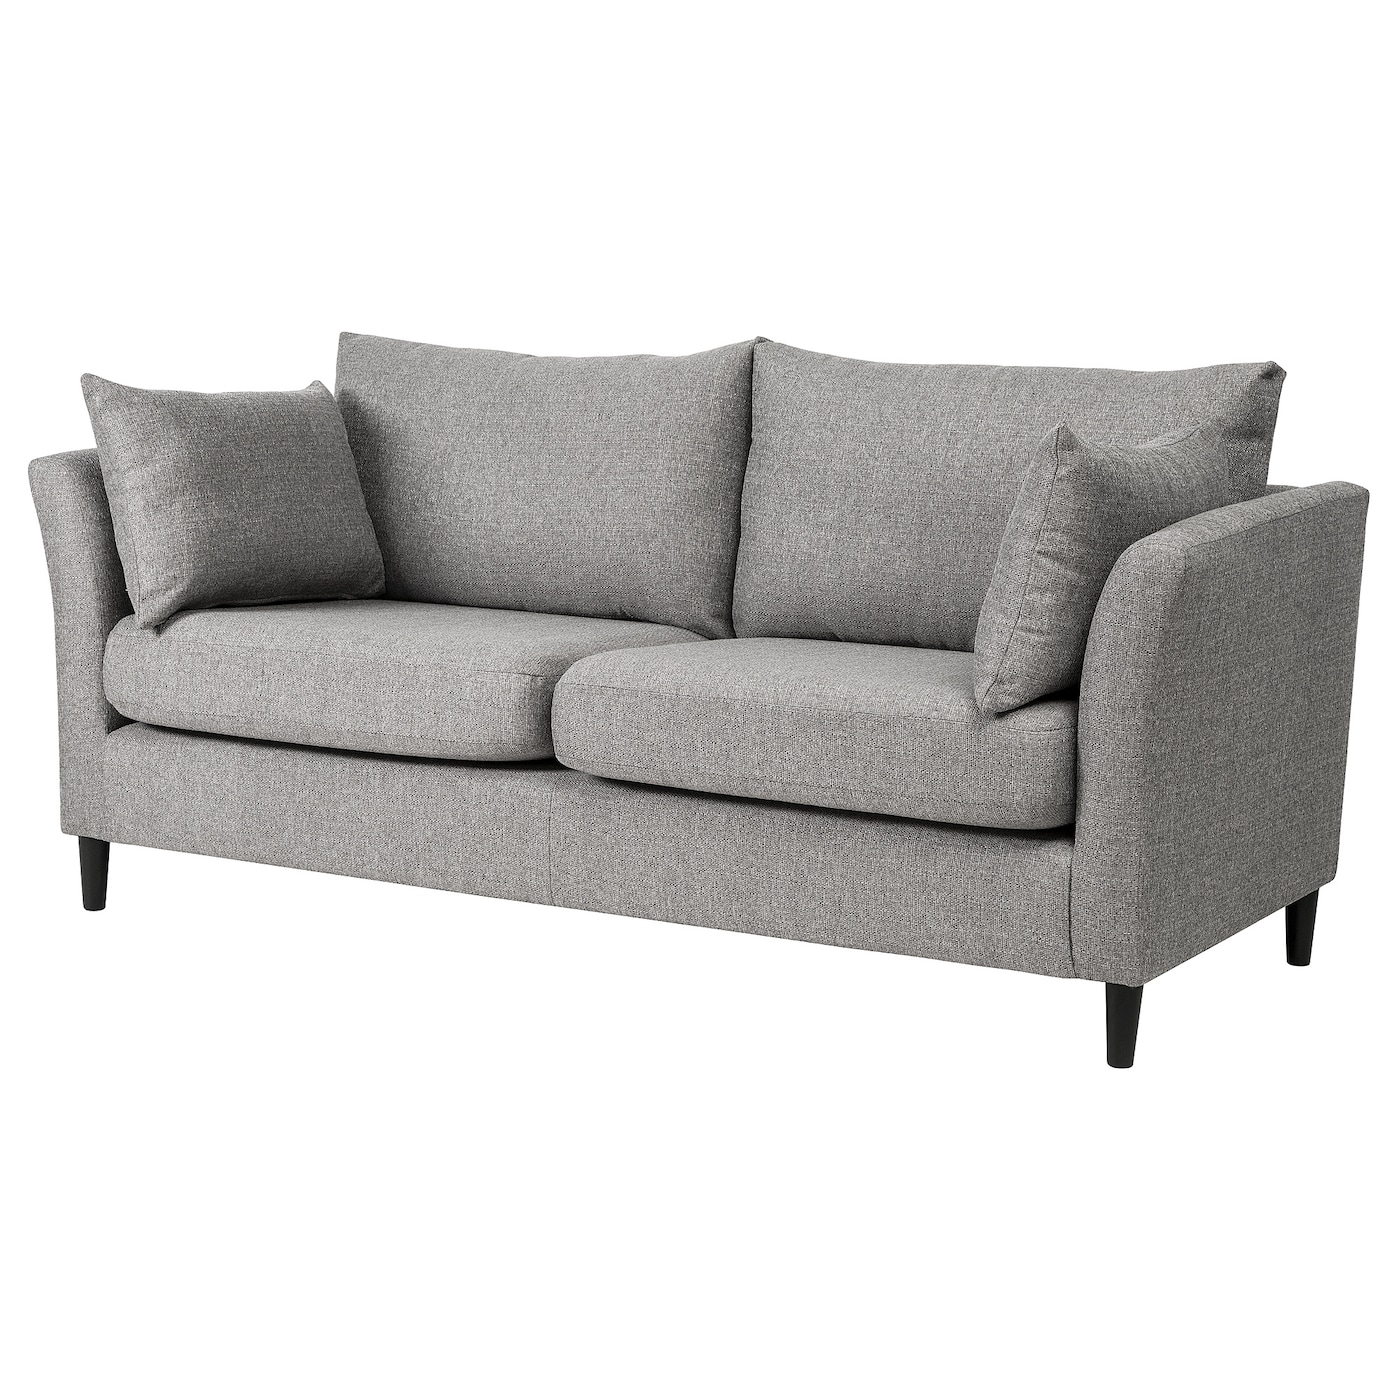 Bankeryd 3 seat sofa grey ikea for Sofa 3 cuerpos salerno